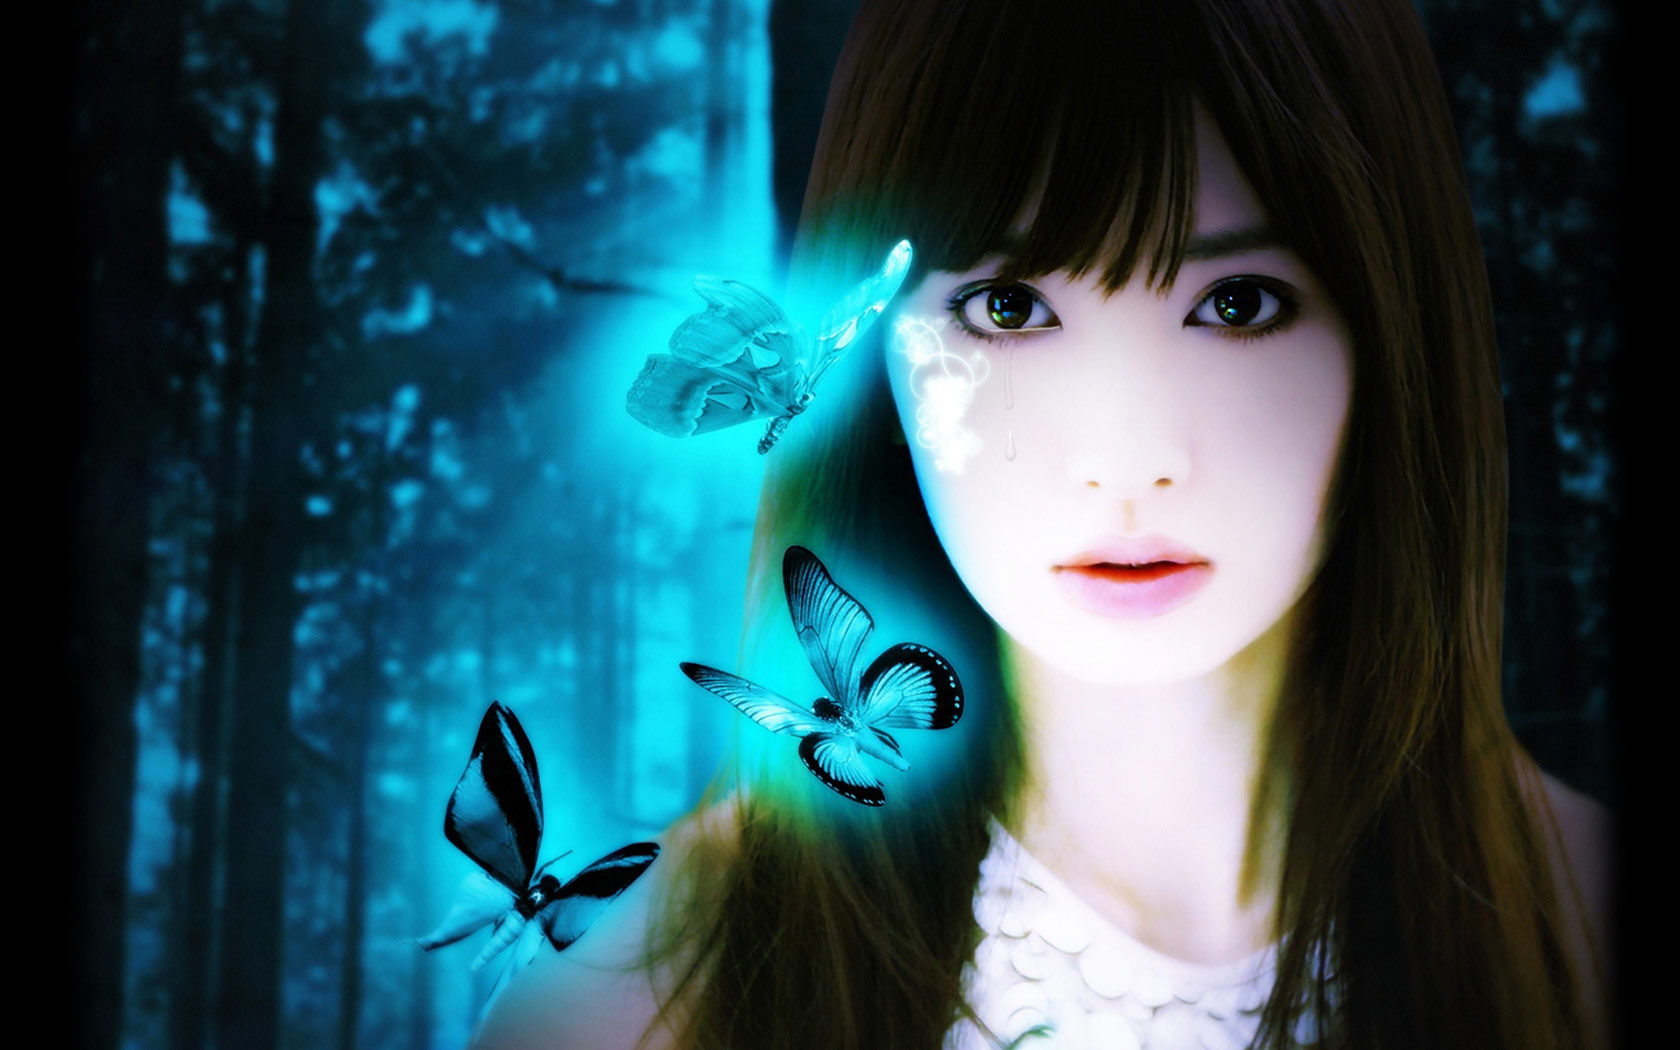 Butterfly Incense Beautiful Anime Wallpaper Comics - Beautiful Blue Butterfly Anime , HD Wallpaper & Backgrounds